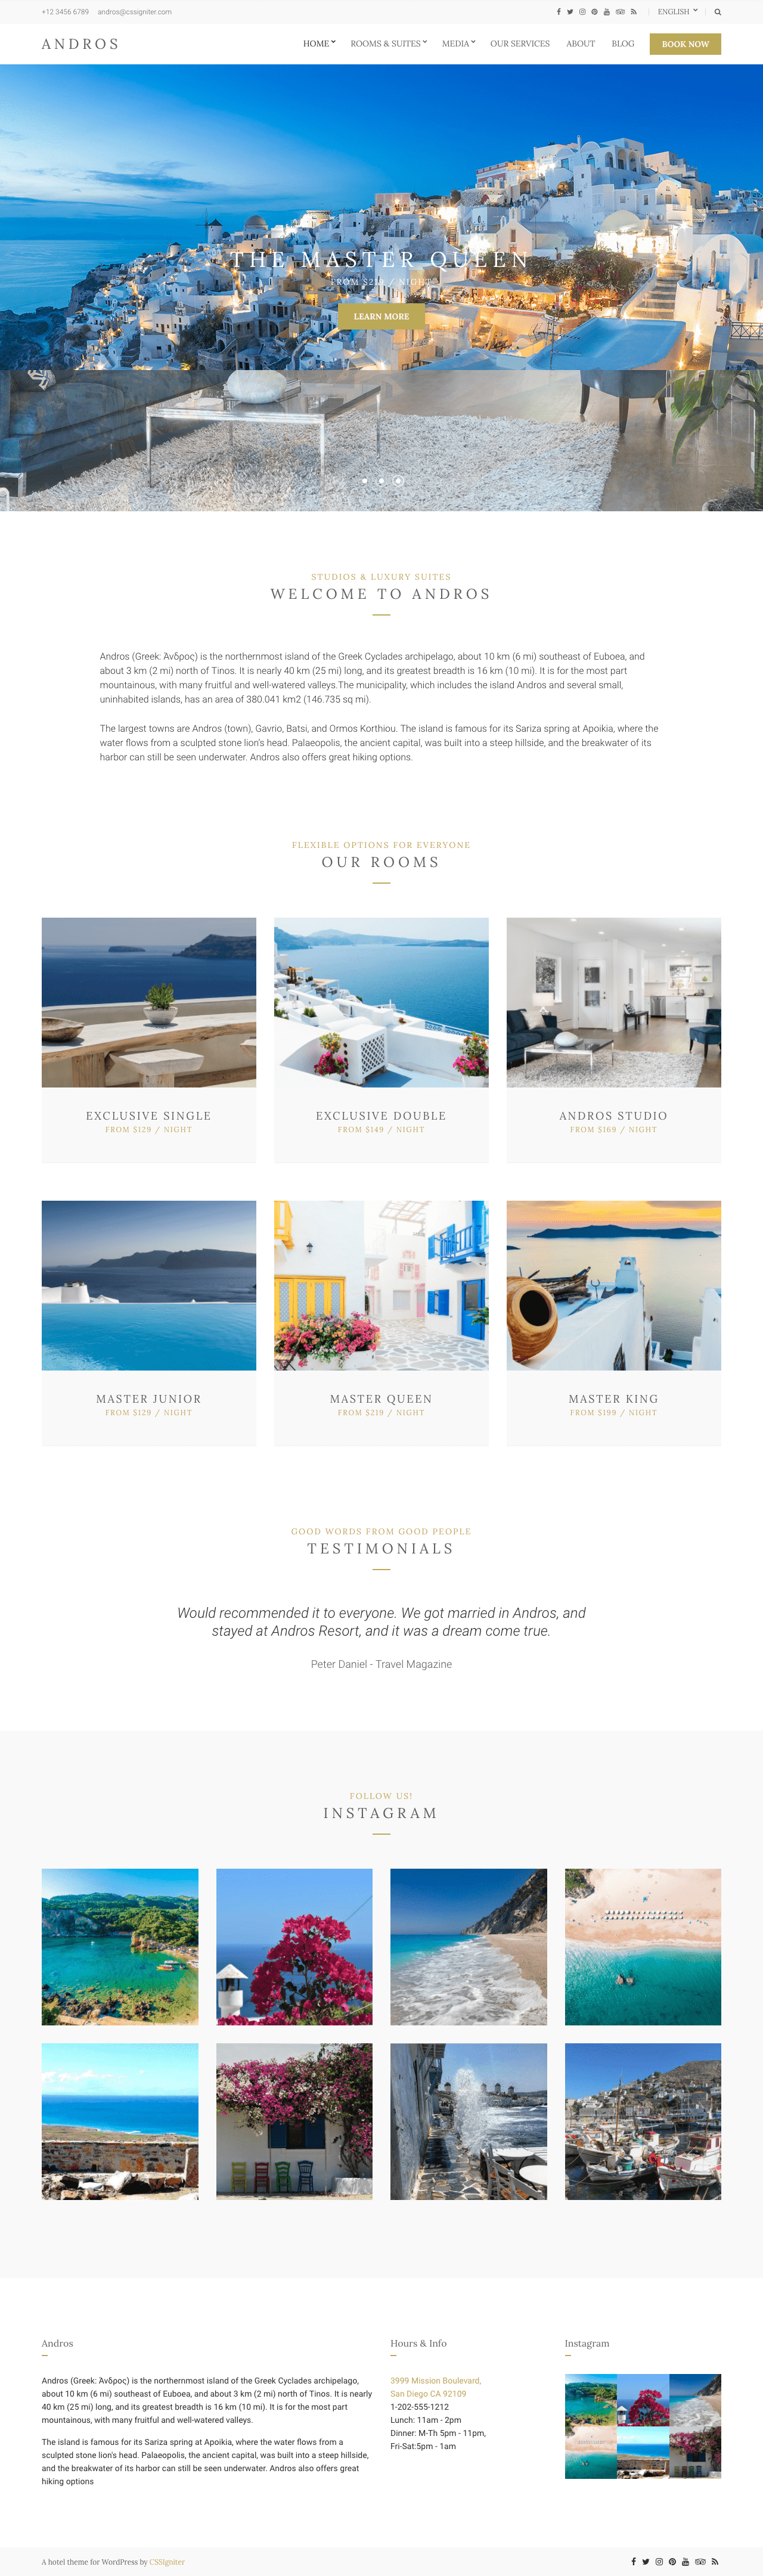 Andros responsive Hotel WordPress theme